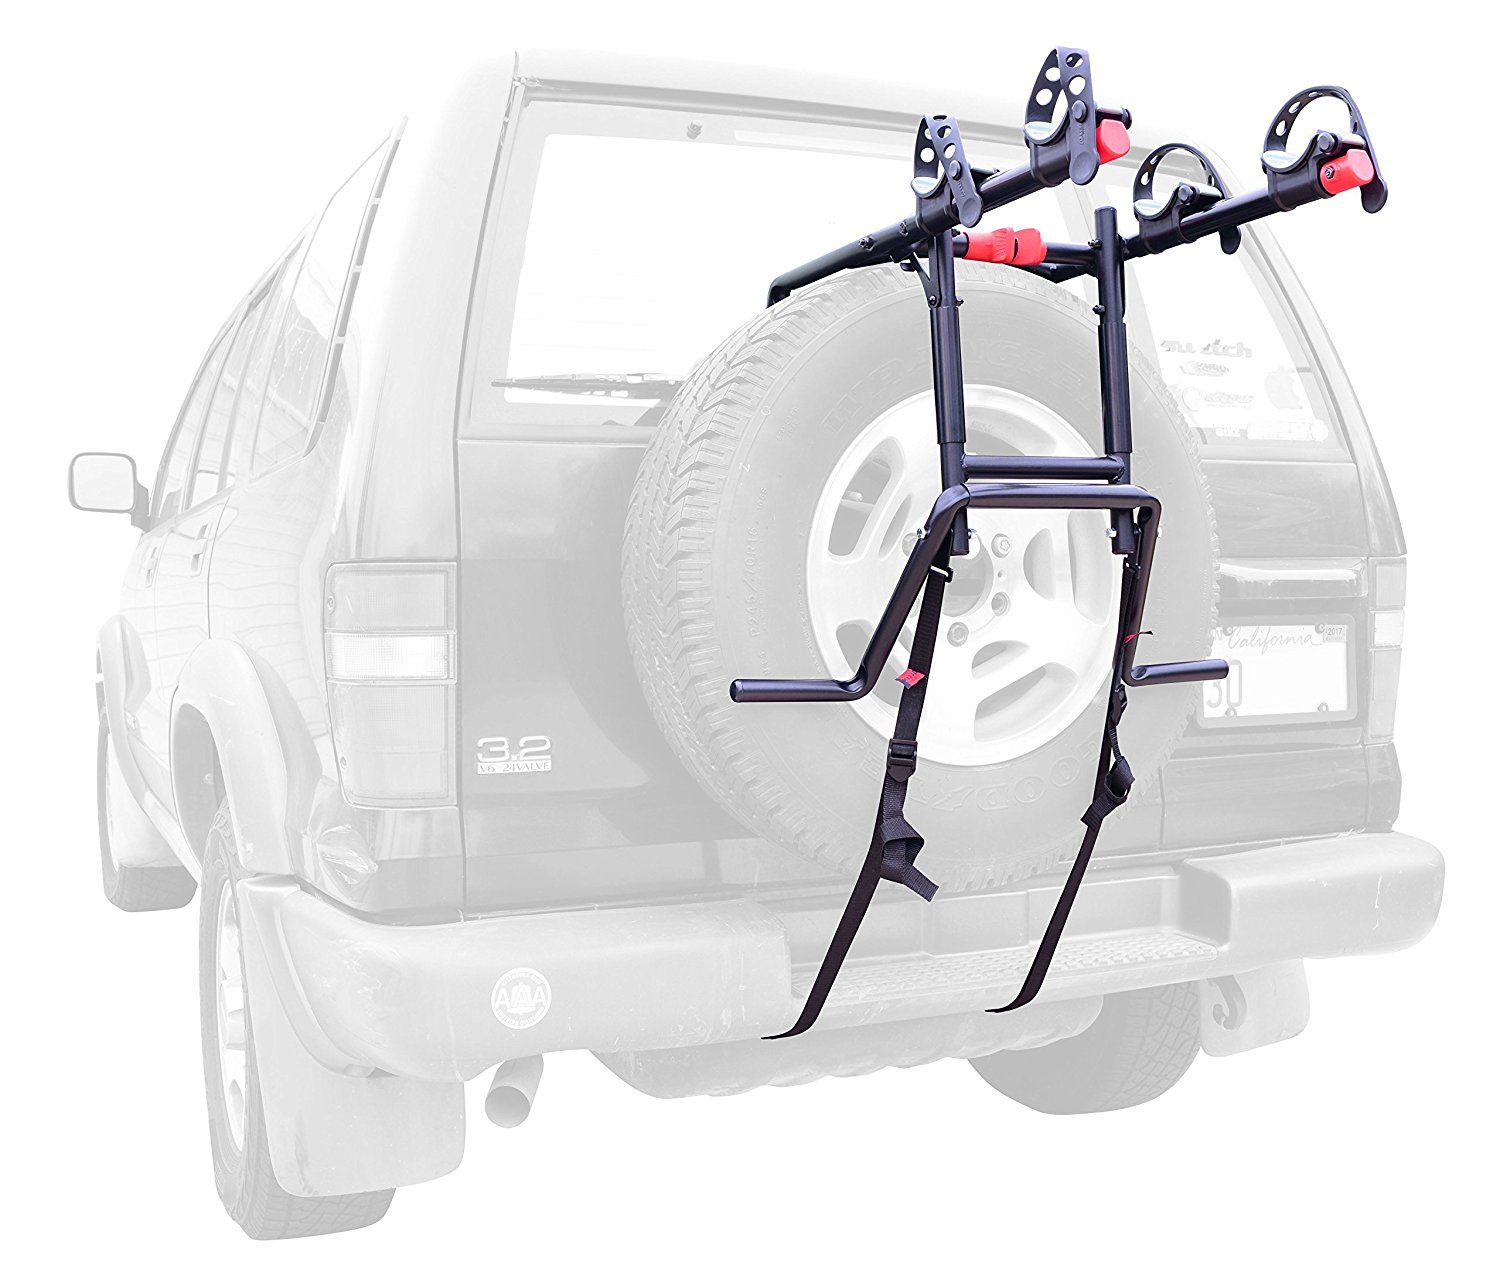 Bike Rack For My Car Not This One Obvi For 1 To 2 Bikes Car